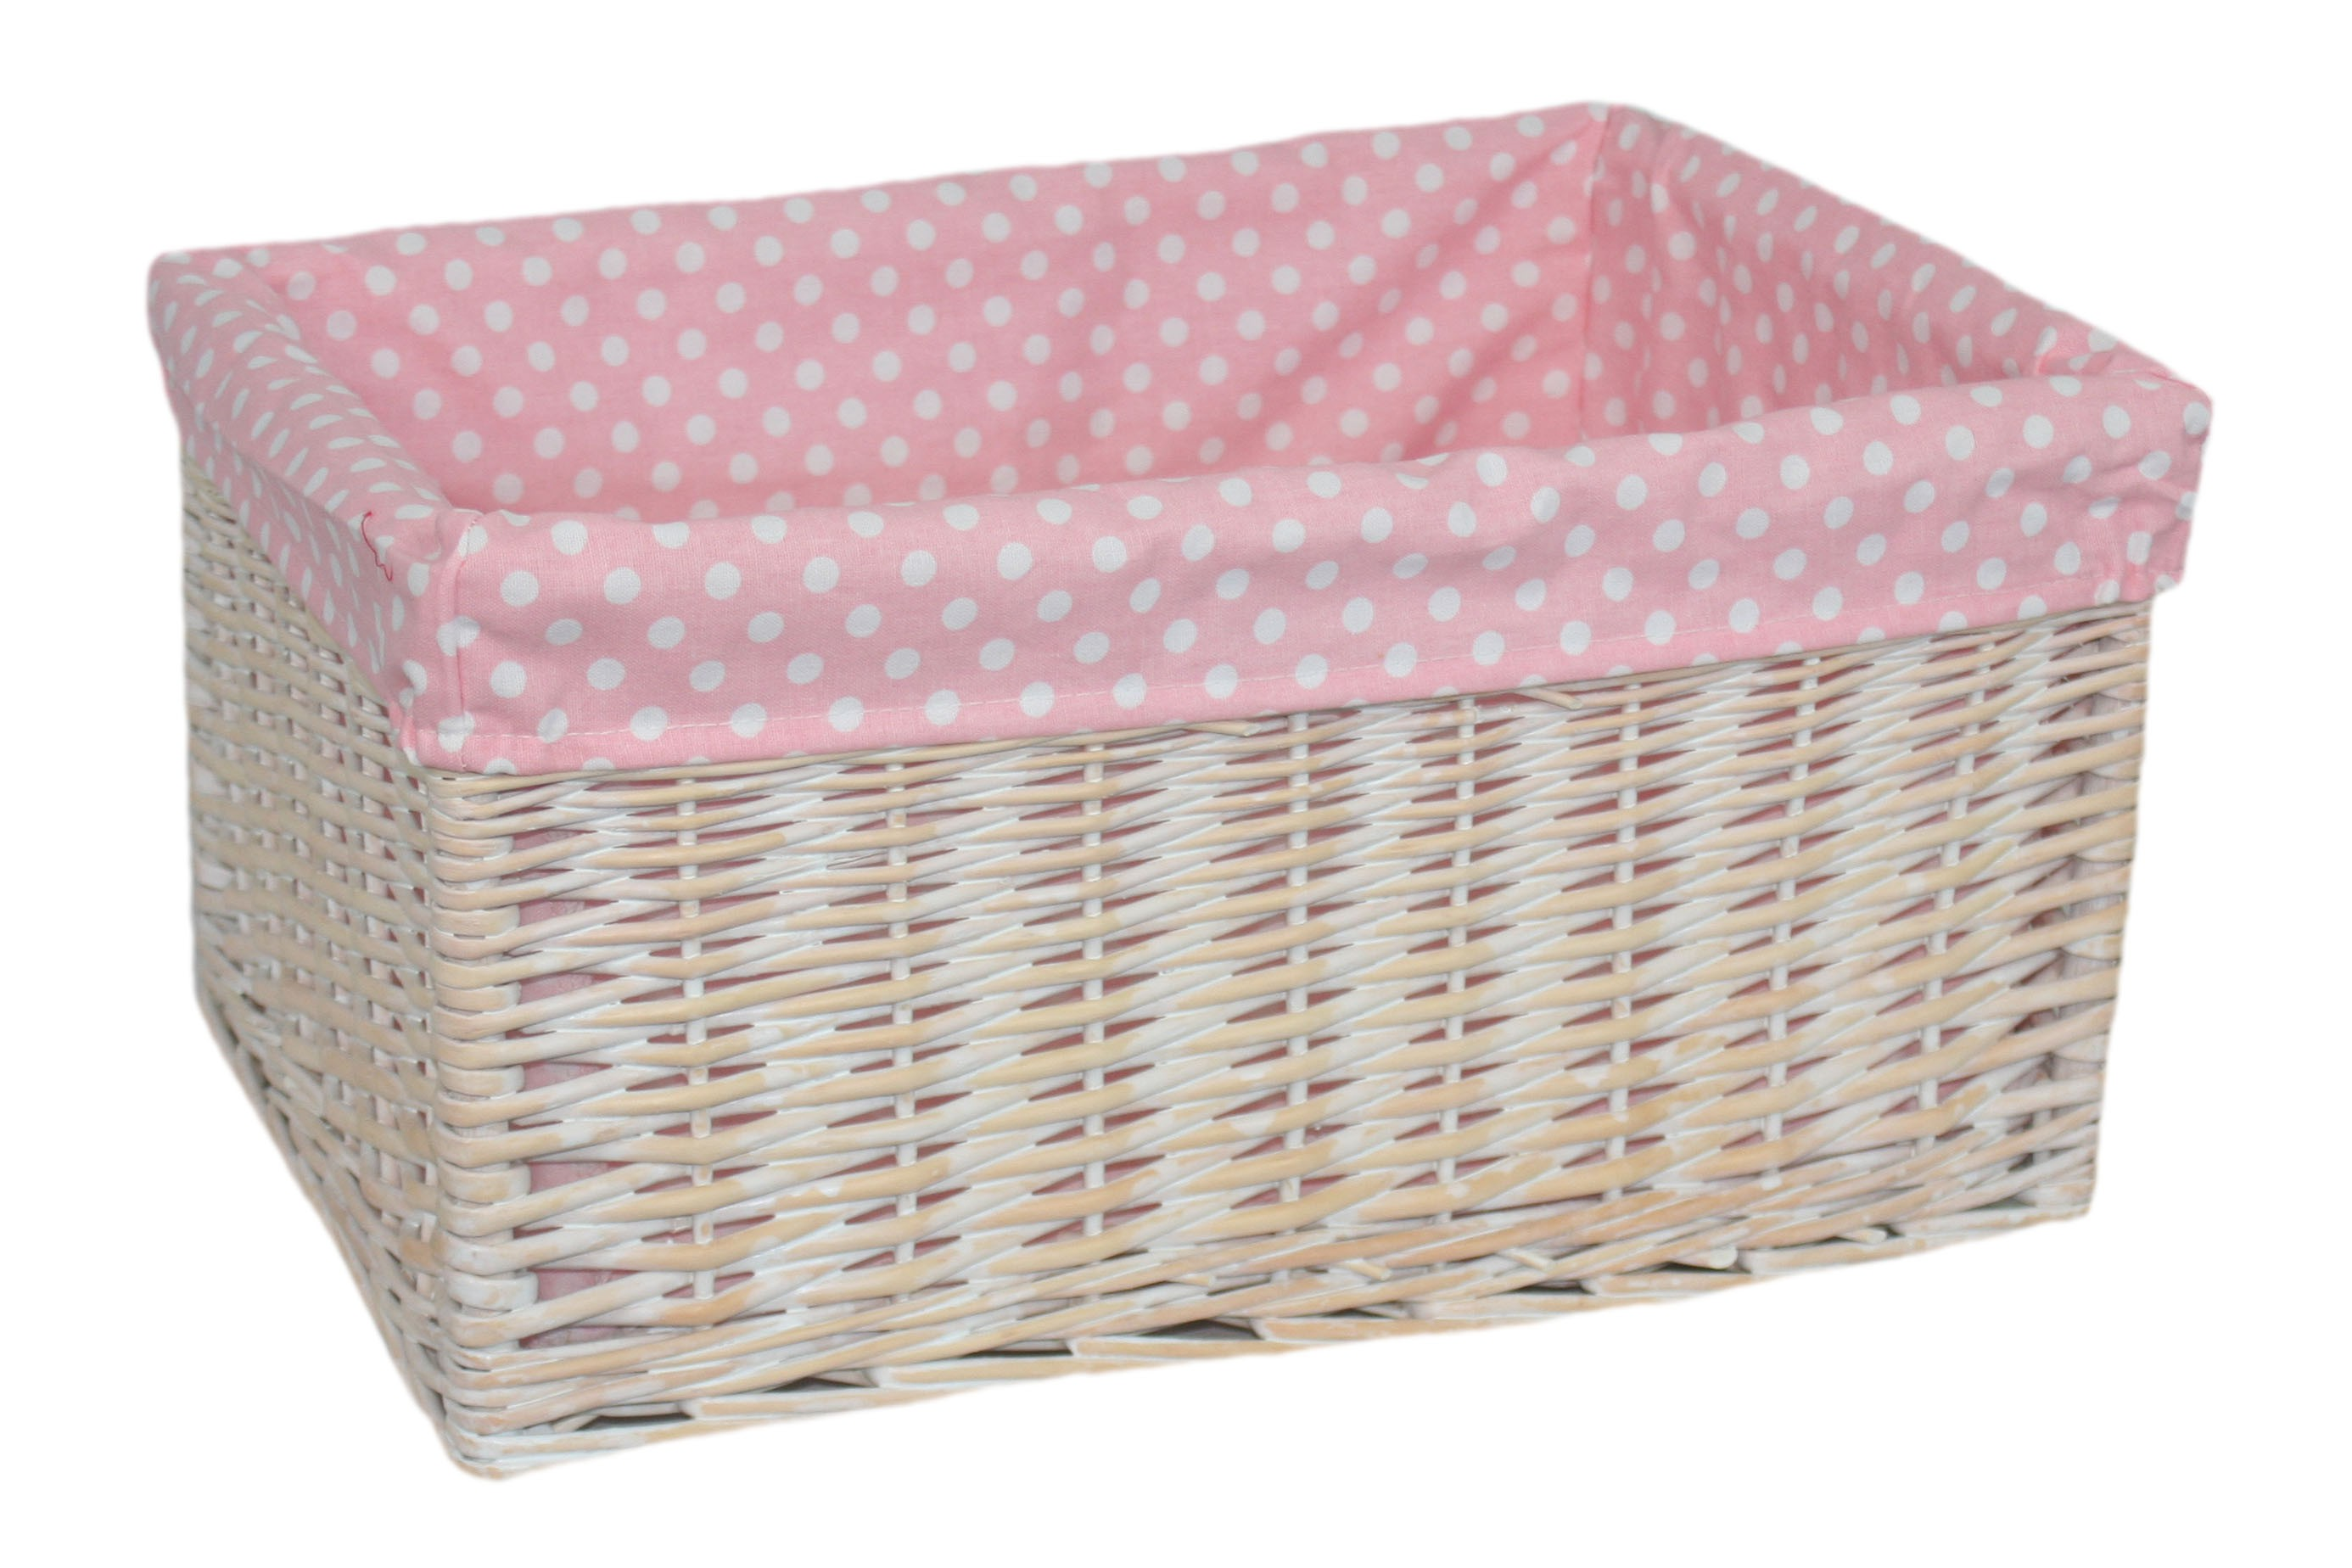 Large Rattan Storage Baskets Pujicom